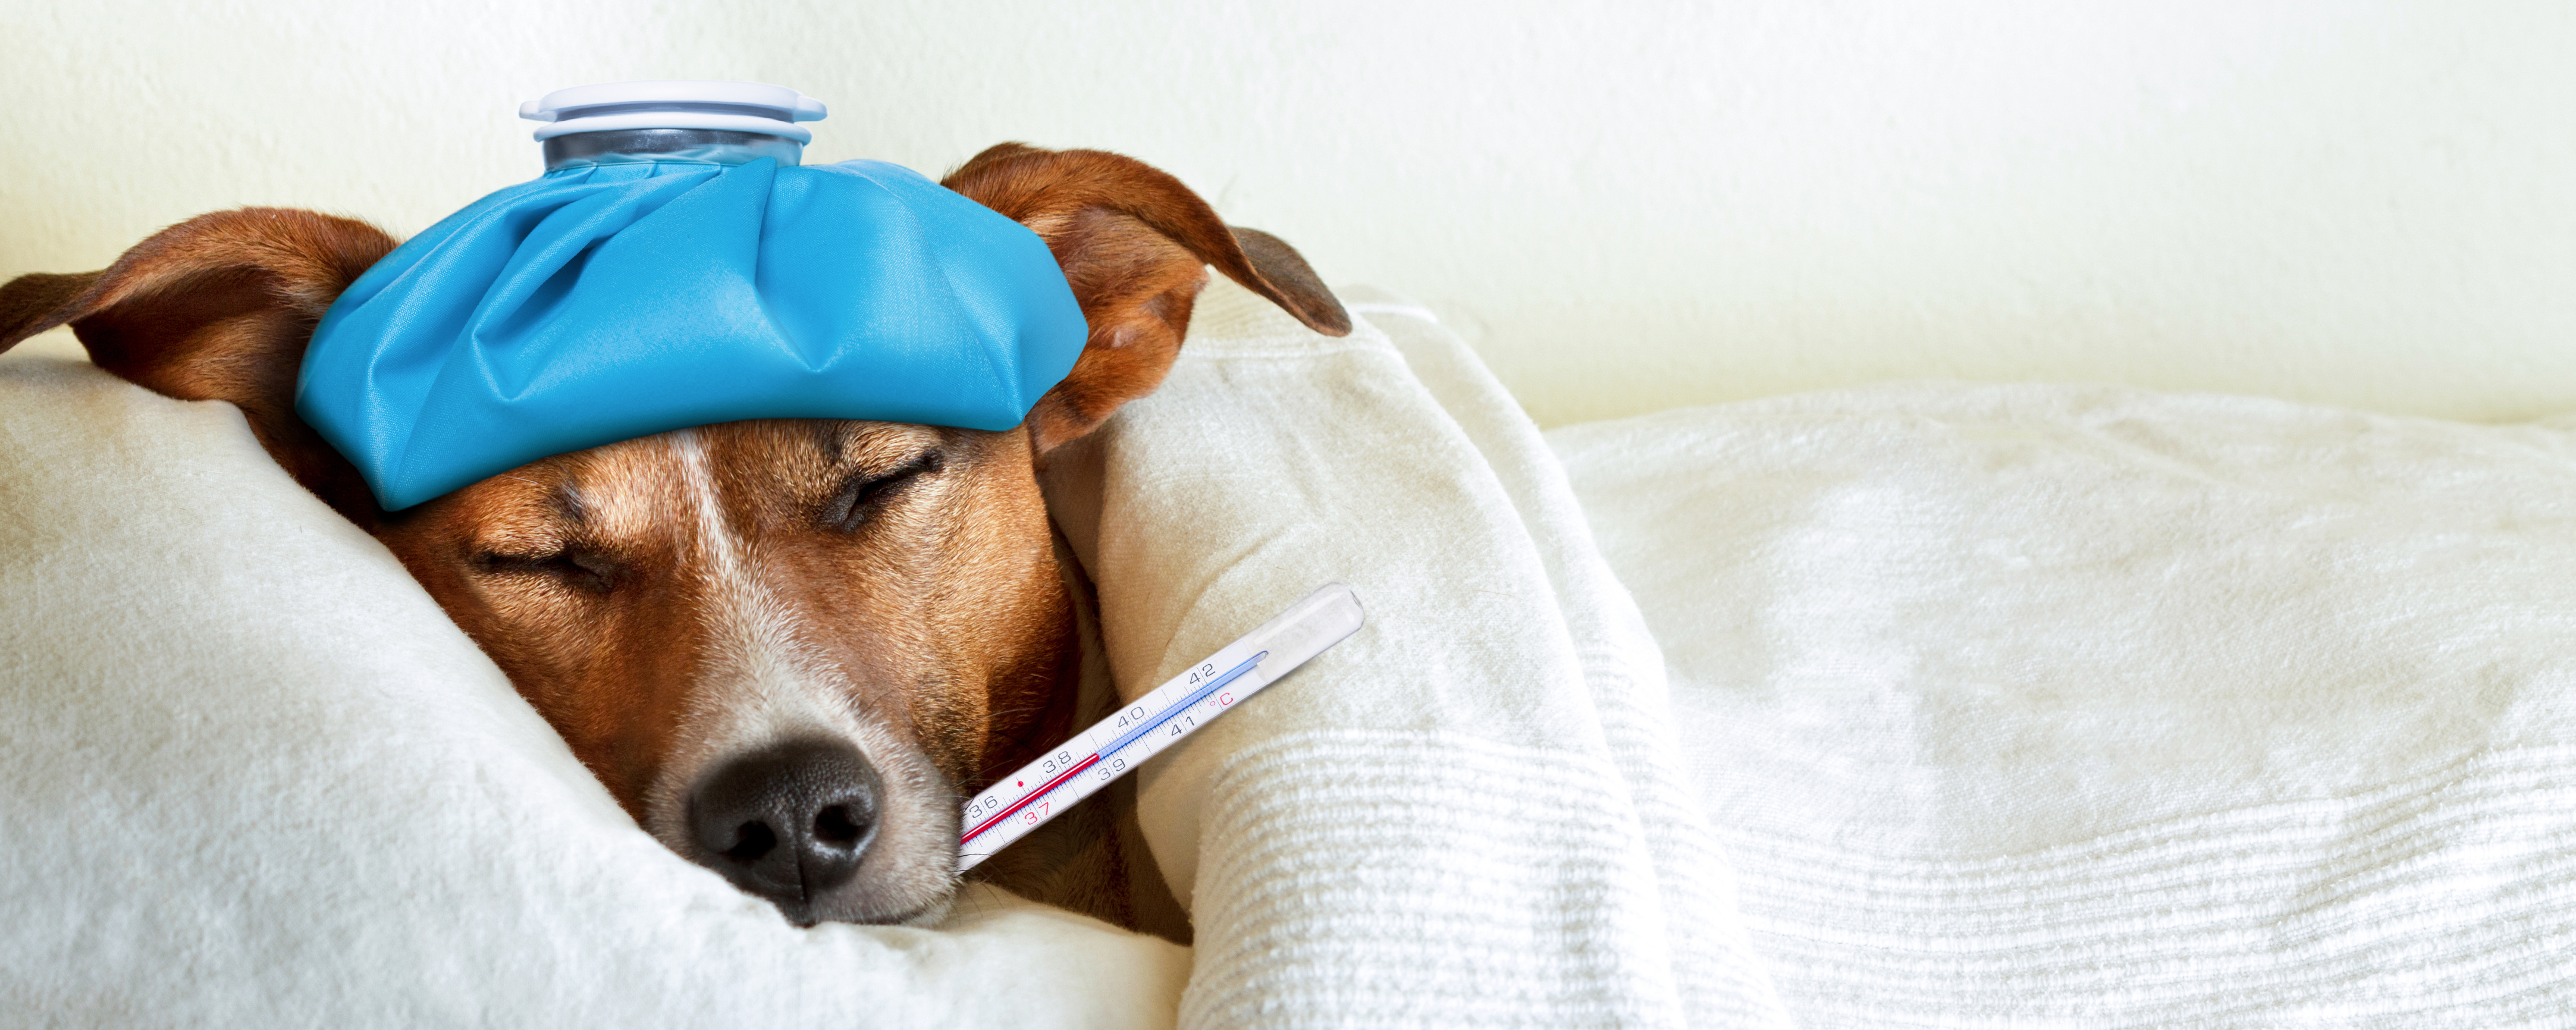 Italian woman wins case to be granted sick pay to look after ill dog